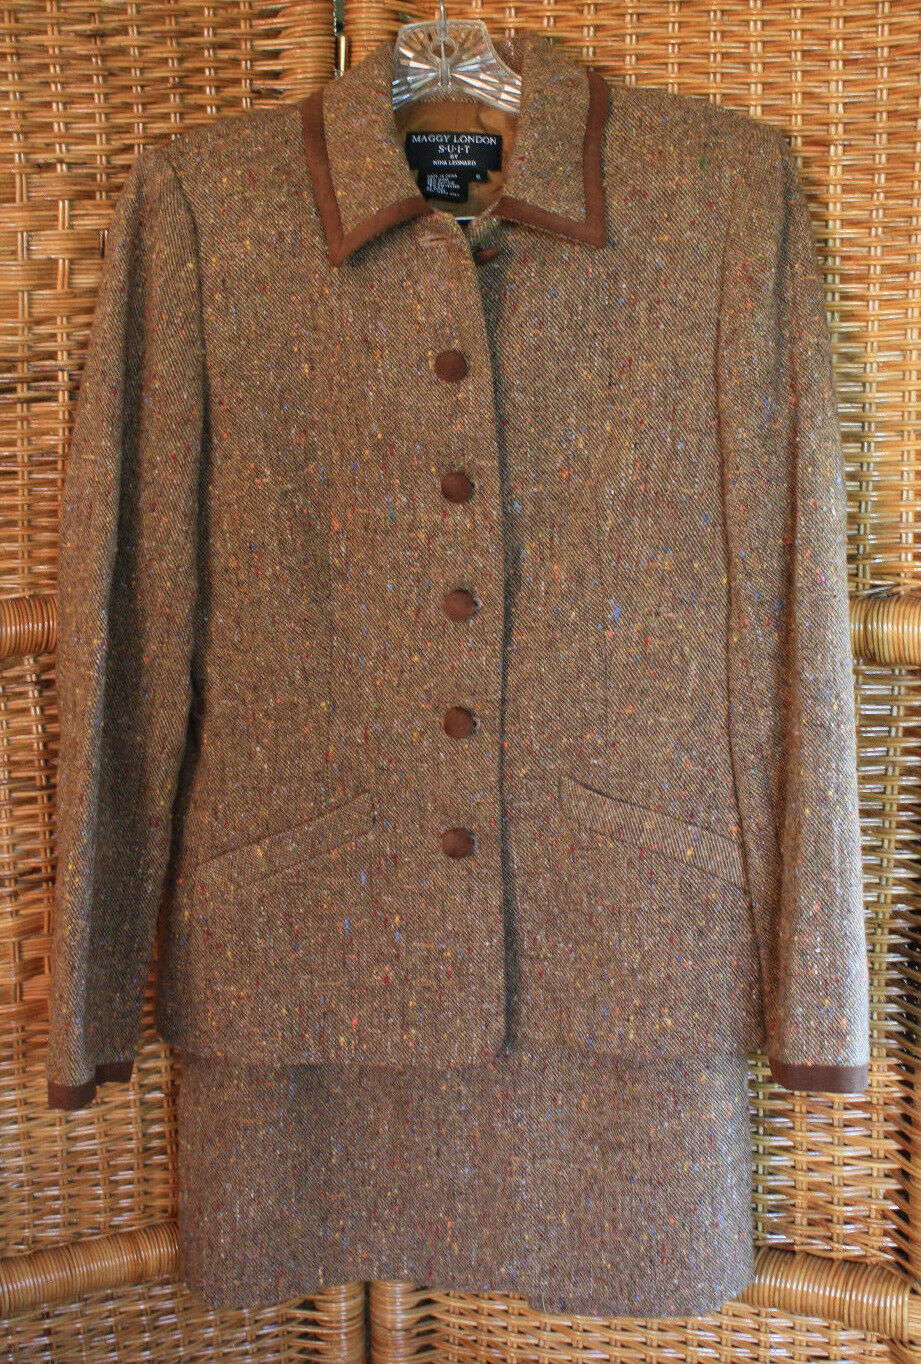 Maggie London Suit Nina Leonard Wool Blend Skirt Suit Brown Tweed Sz 6 Costume